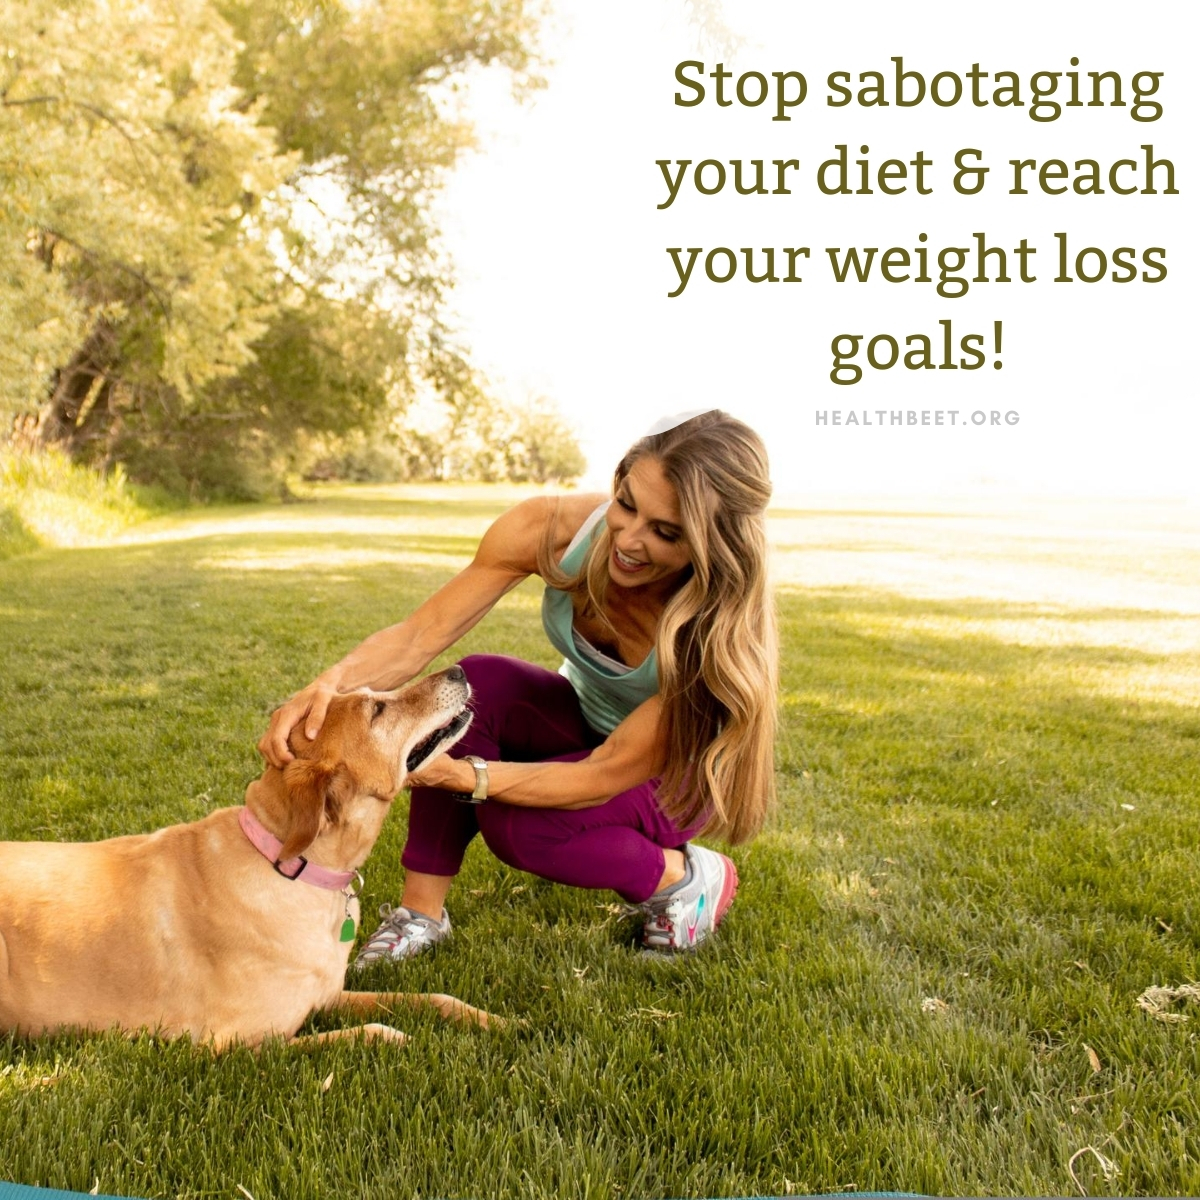 4 ways to stop sabotaging your diet and reach your weight loss goals